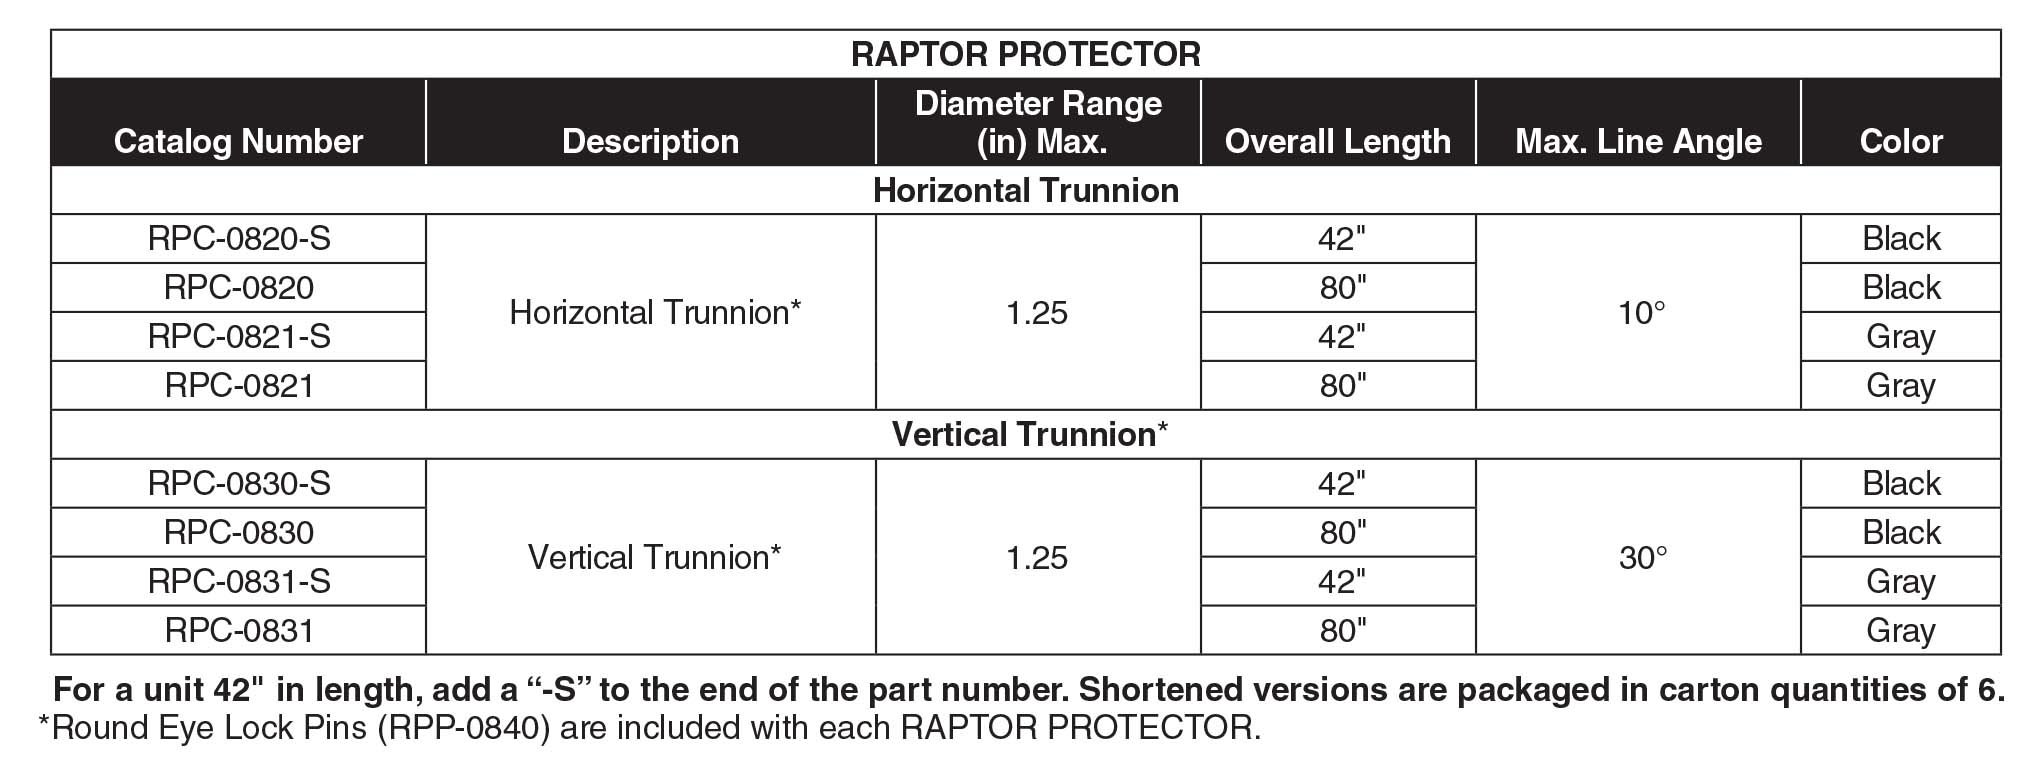 Raptor Protector Part Table Sec22 3